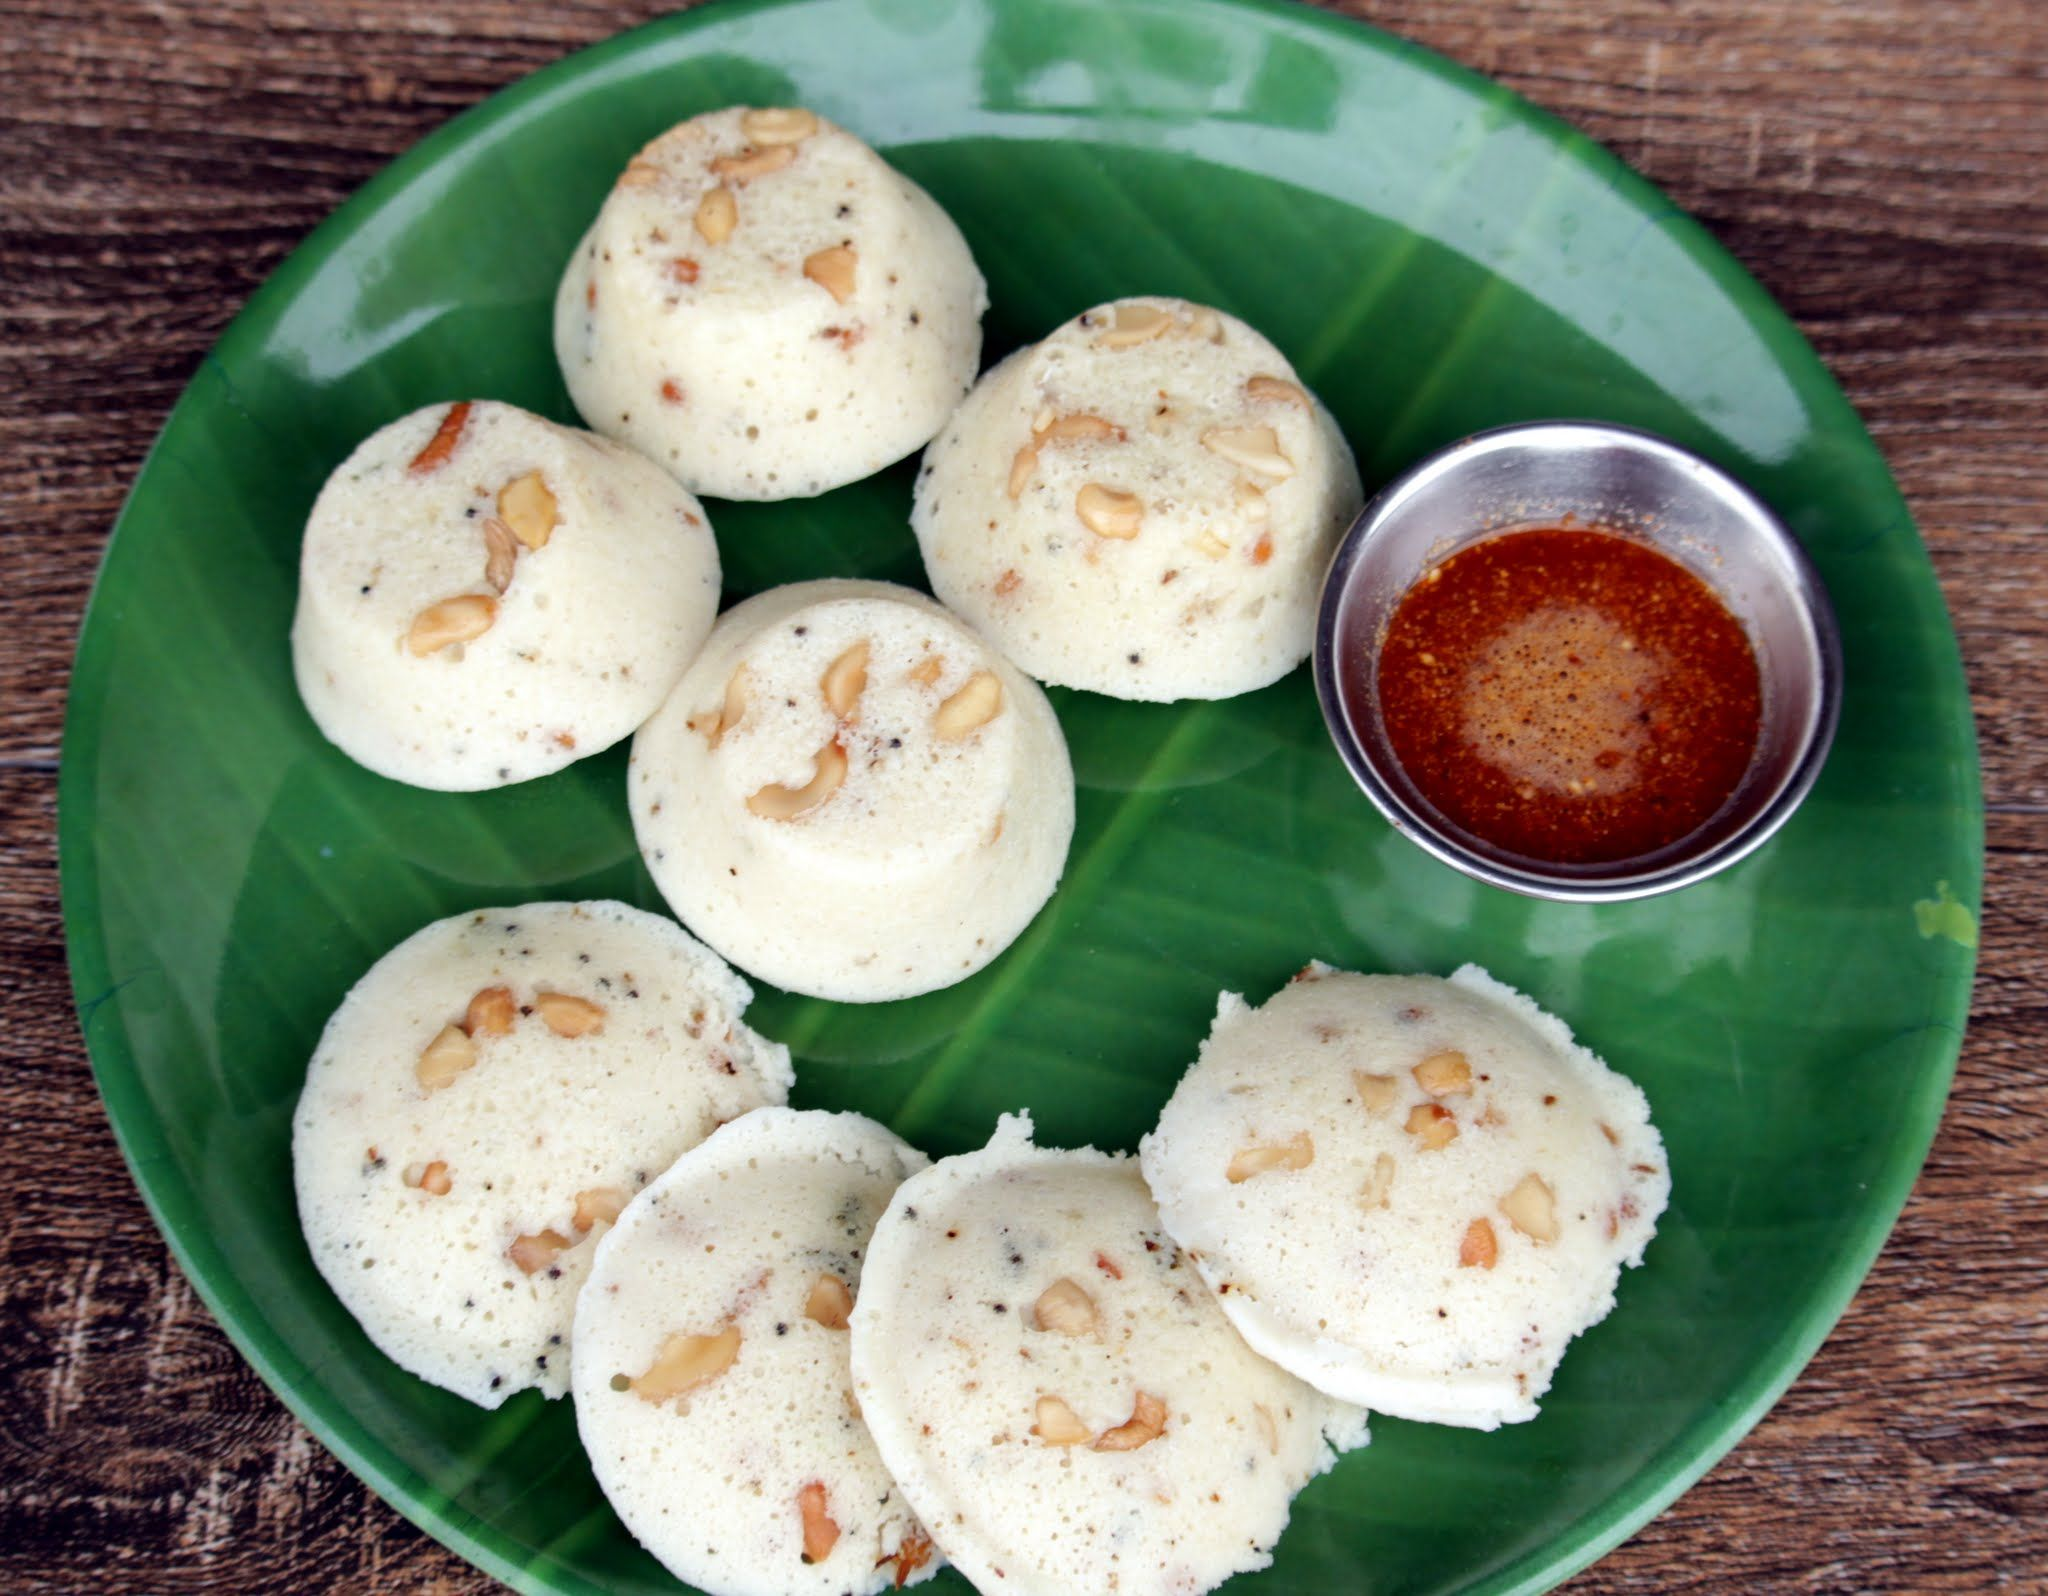 Kanchipuram idli idli dosa uttappam pinterest south k for kanchipuram idli kancheepuram idli kanchivaram idli my cooking journey forumfinder Choice Image